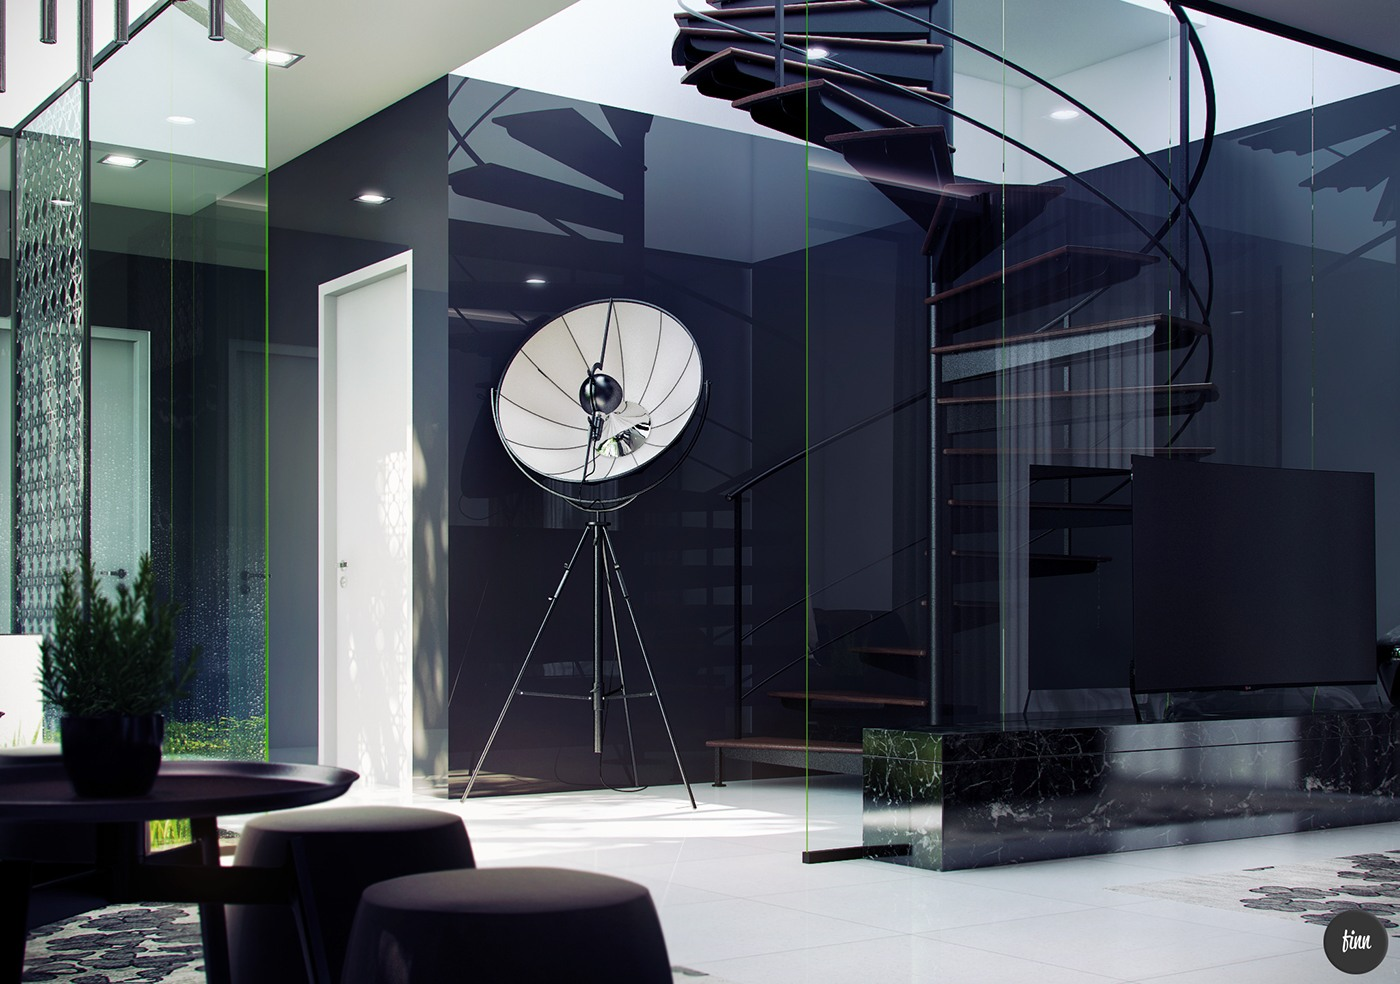 Dramatic Spiral Staircase In Glass - 3 natural interior concepts with floor to ceiling windows